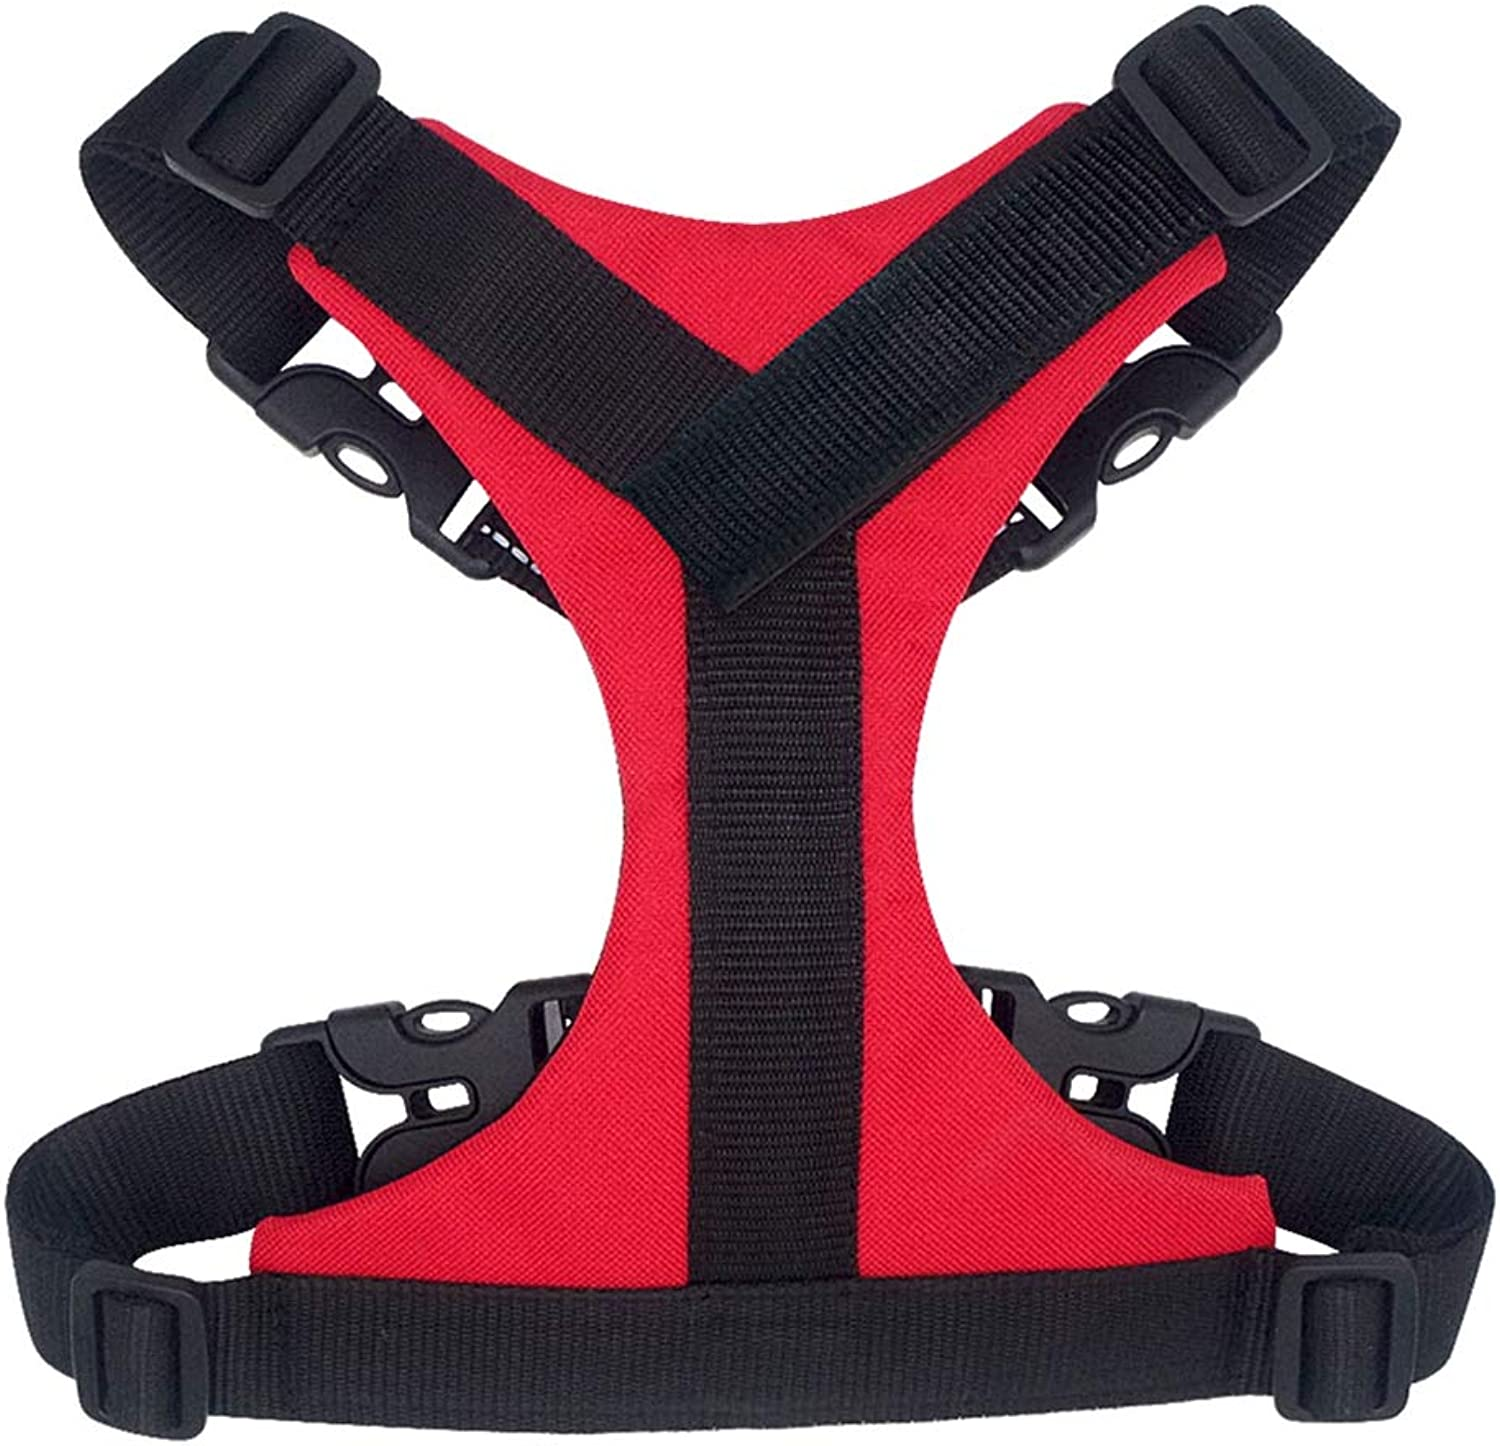 Dog Harness Durable Nylon Step in Reflective Breathable Mesh Harness Vest Small Medium Large Dogs Cat Pet Pitbull Red bluee